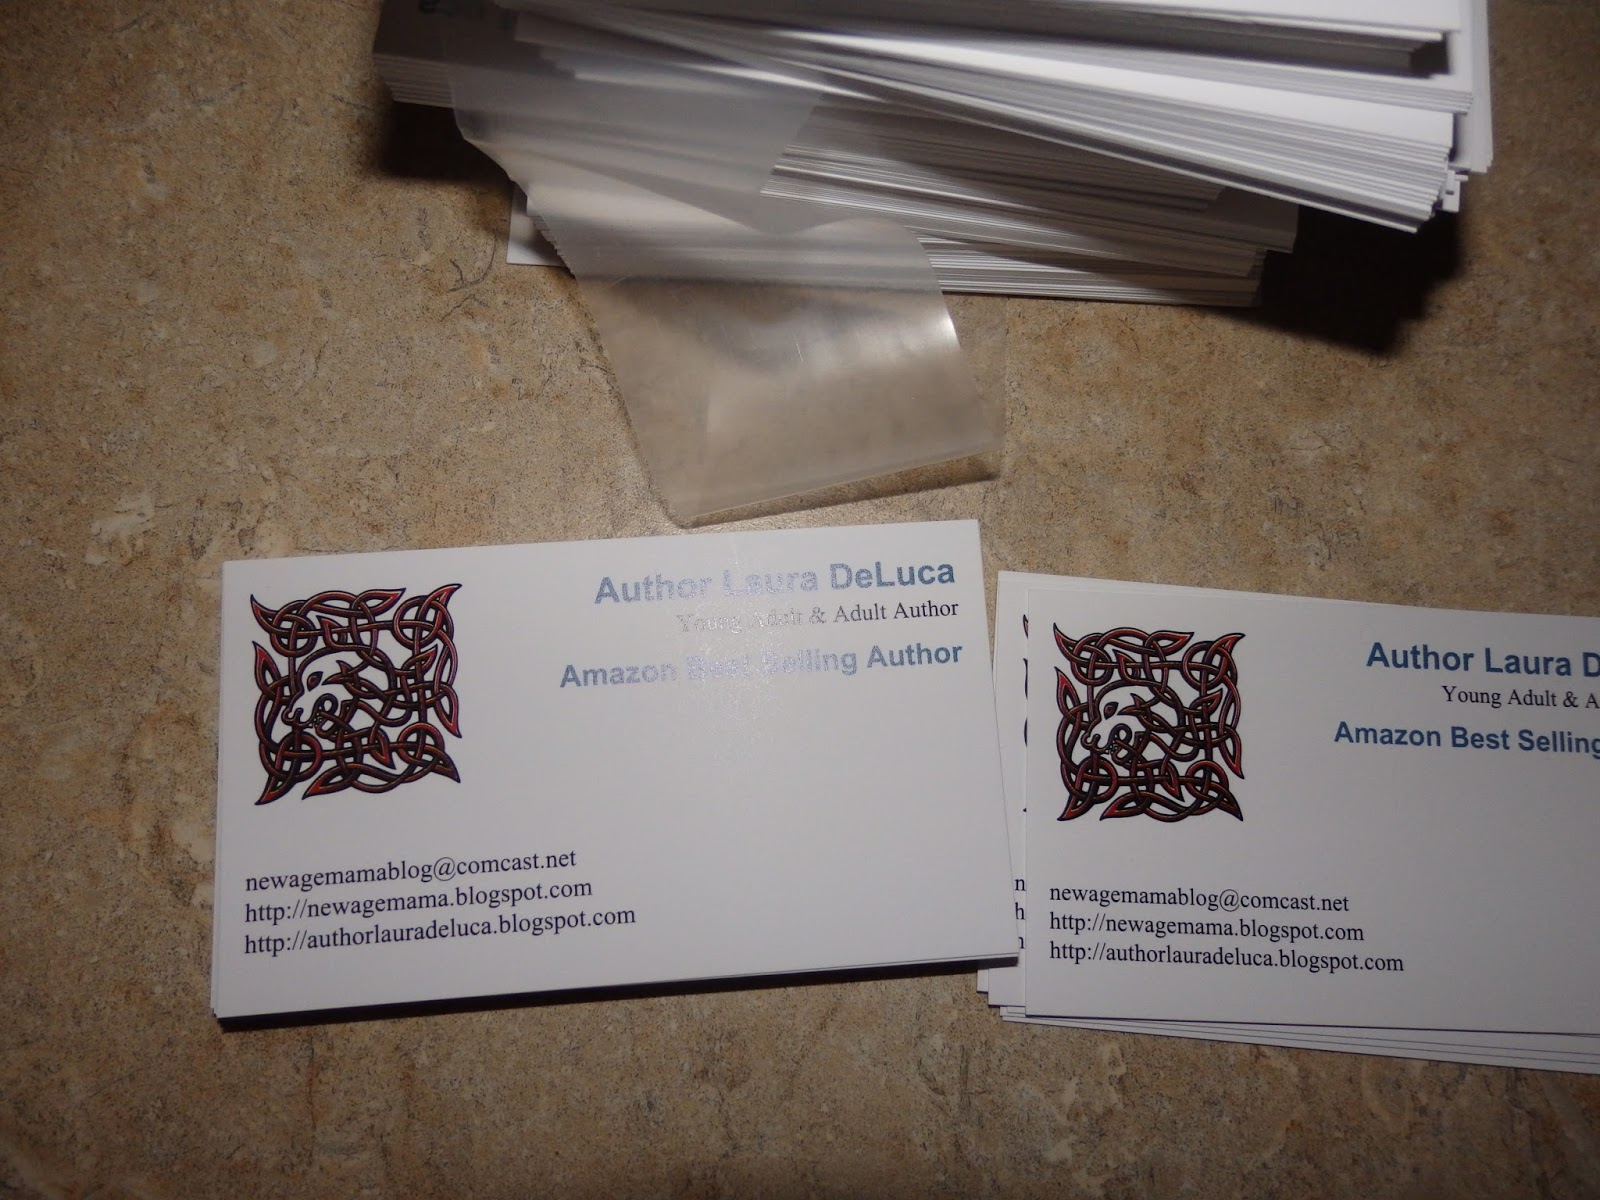 New age mama affordable business cards delivered quick from staples and i know it works because the last time i was at the dentist my hygienist pulled my book out of her handbag and asked me to sign it while business cards reheart Image collections